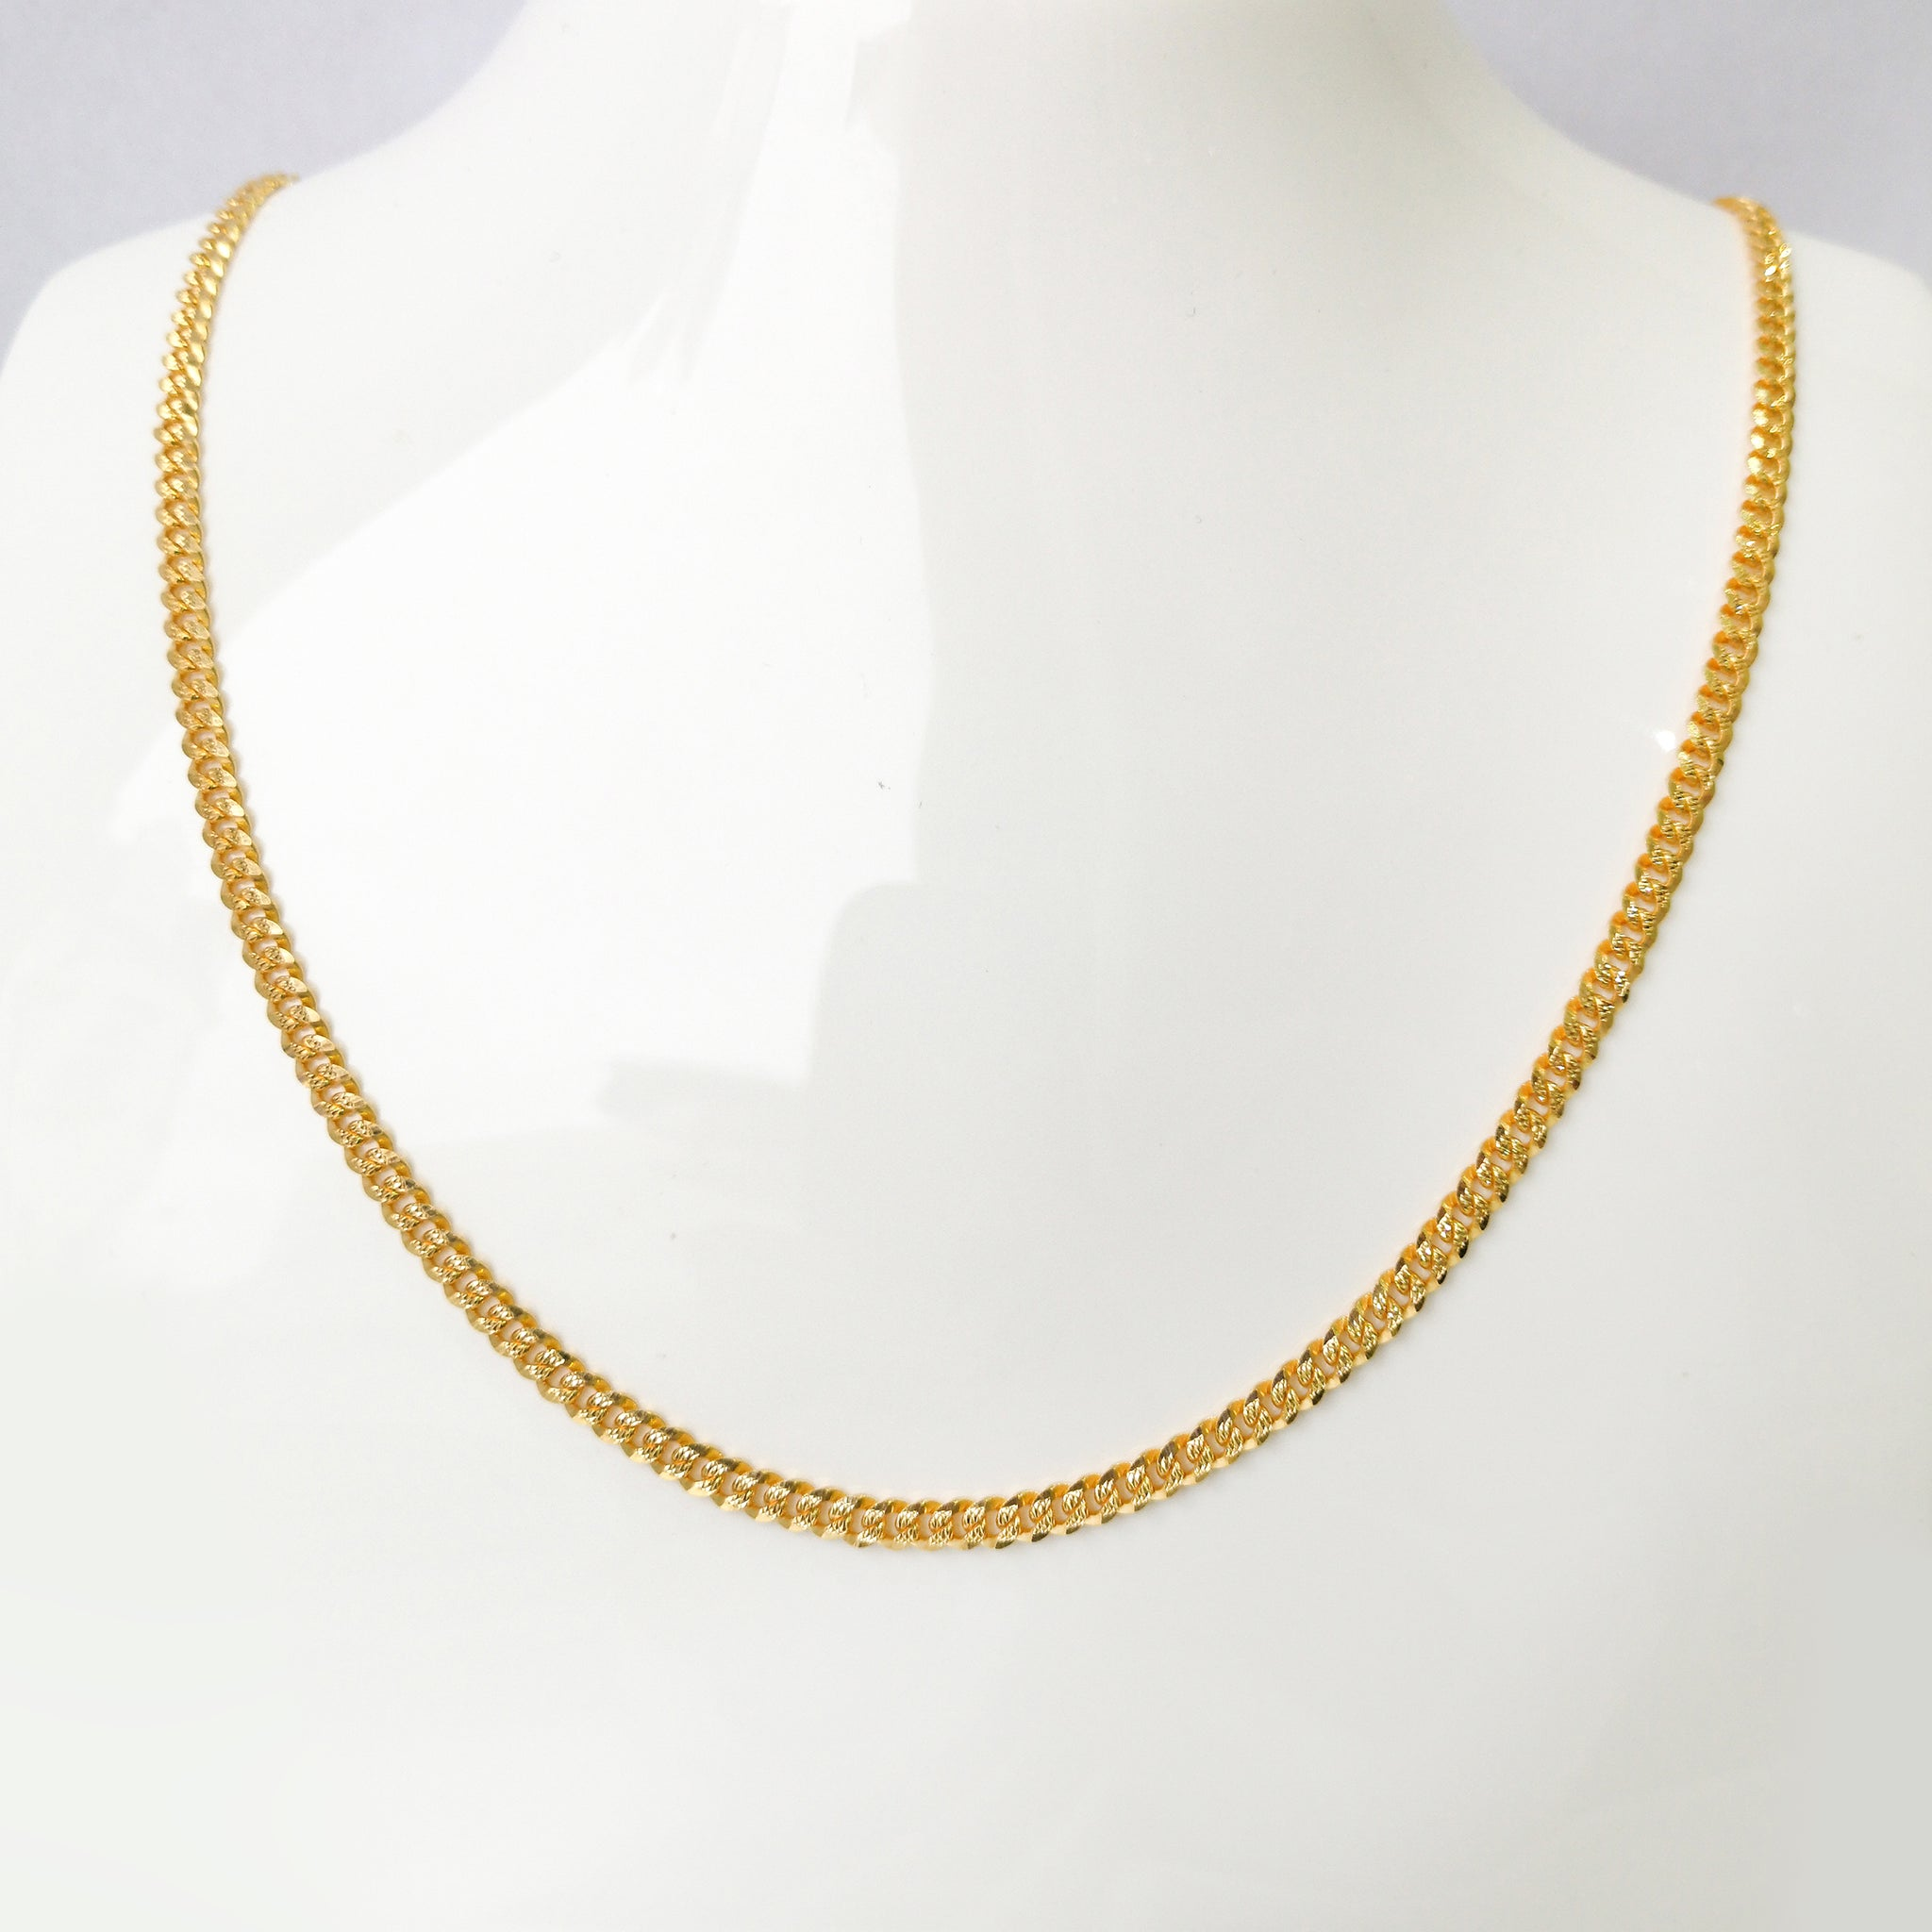 22ct Gold Curb Link Chain with lobster clasp C-7600